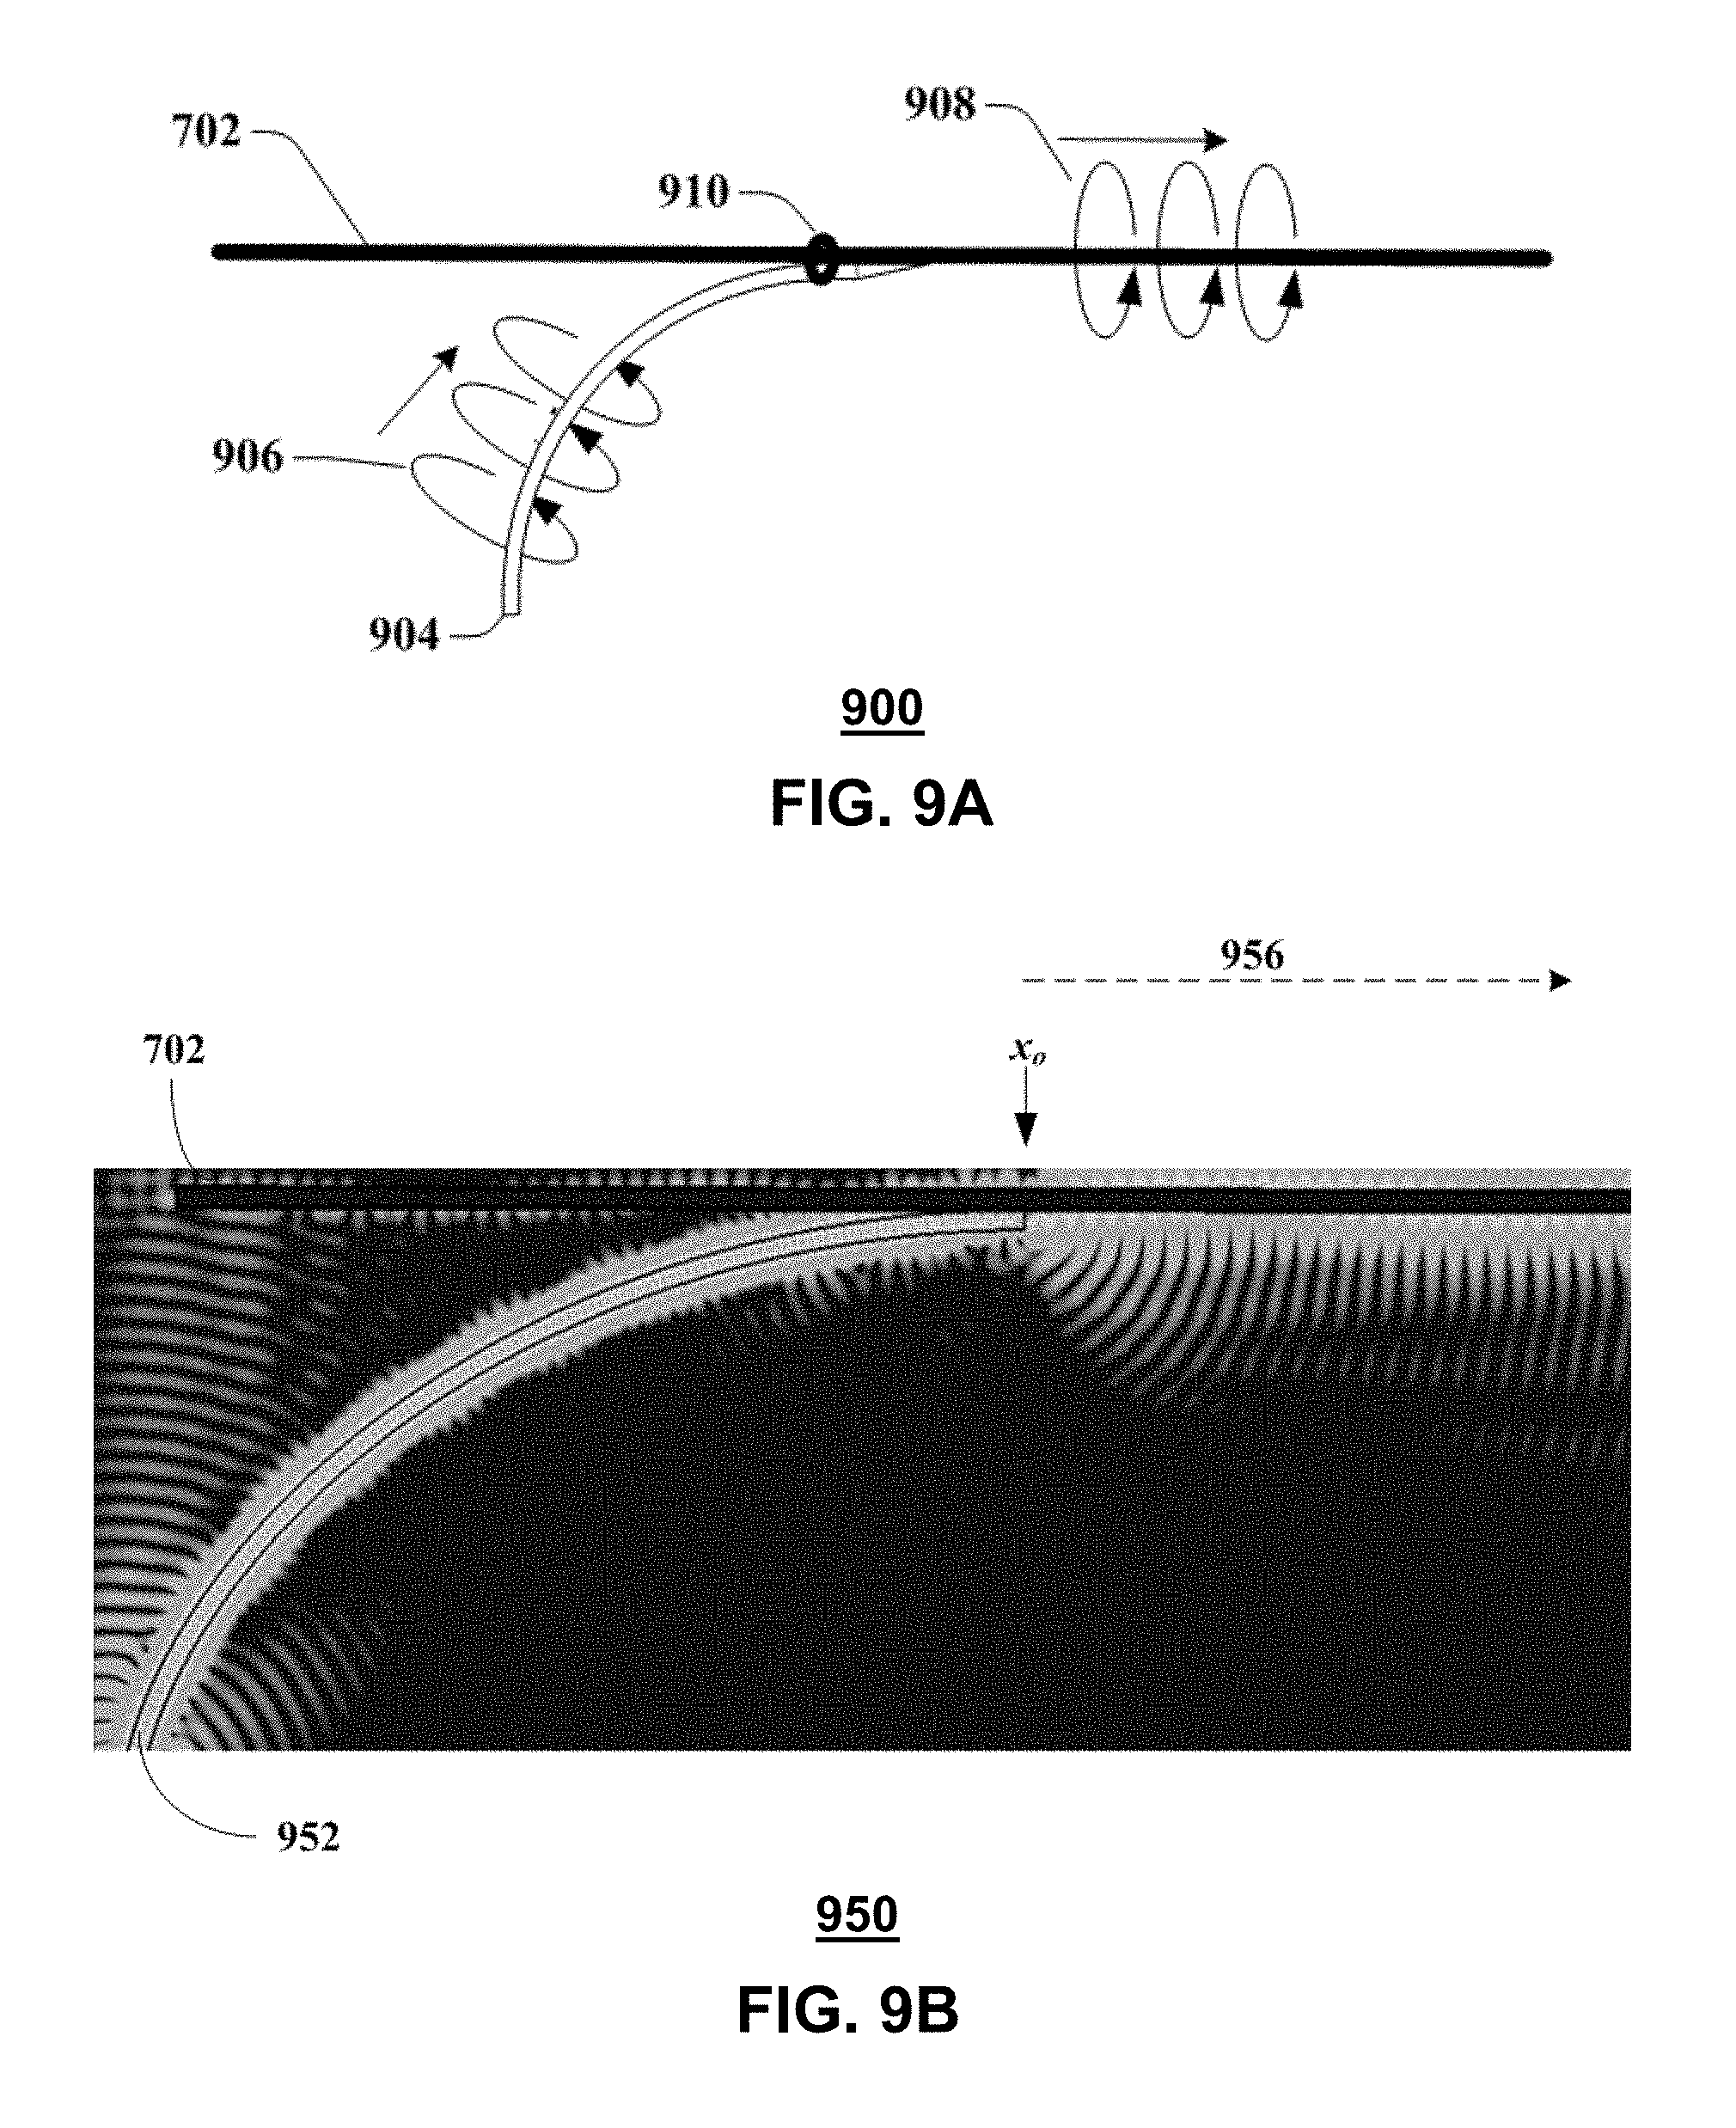 US20180062702A1 - Directional coupling device and methods